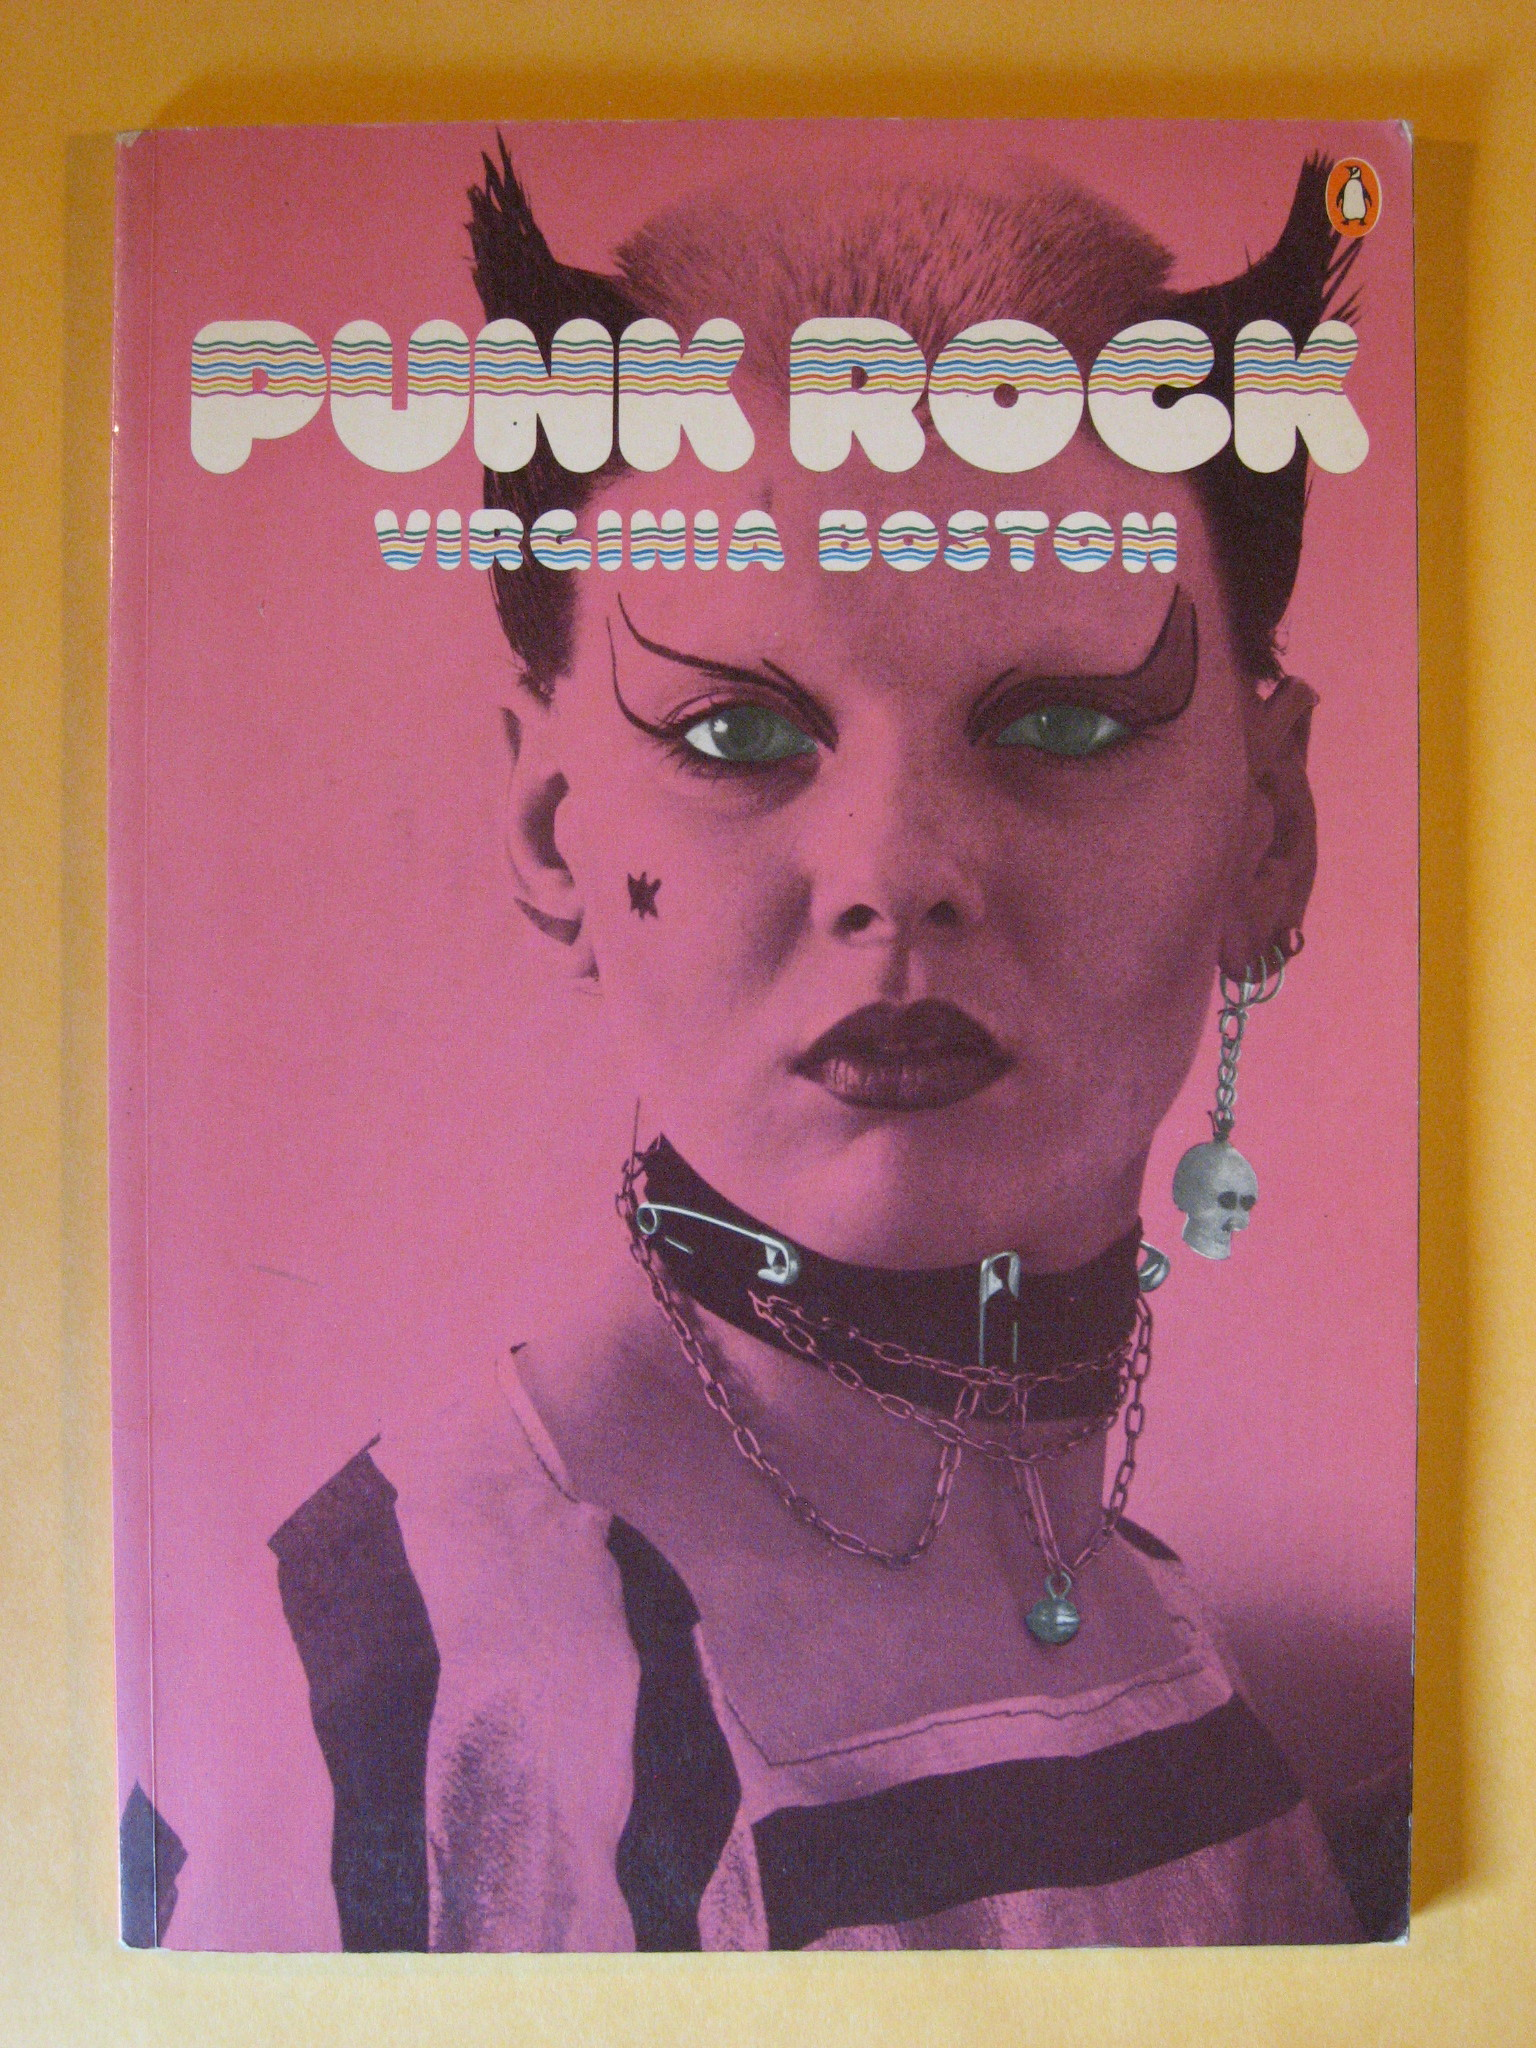 Punk Rock, Boston, Virginia